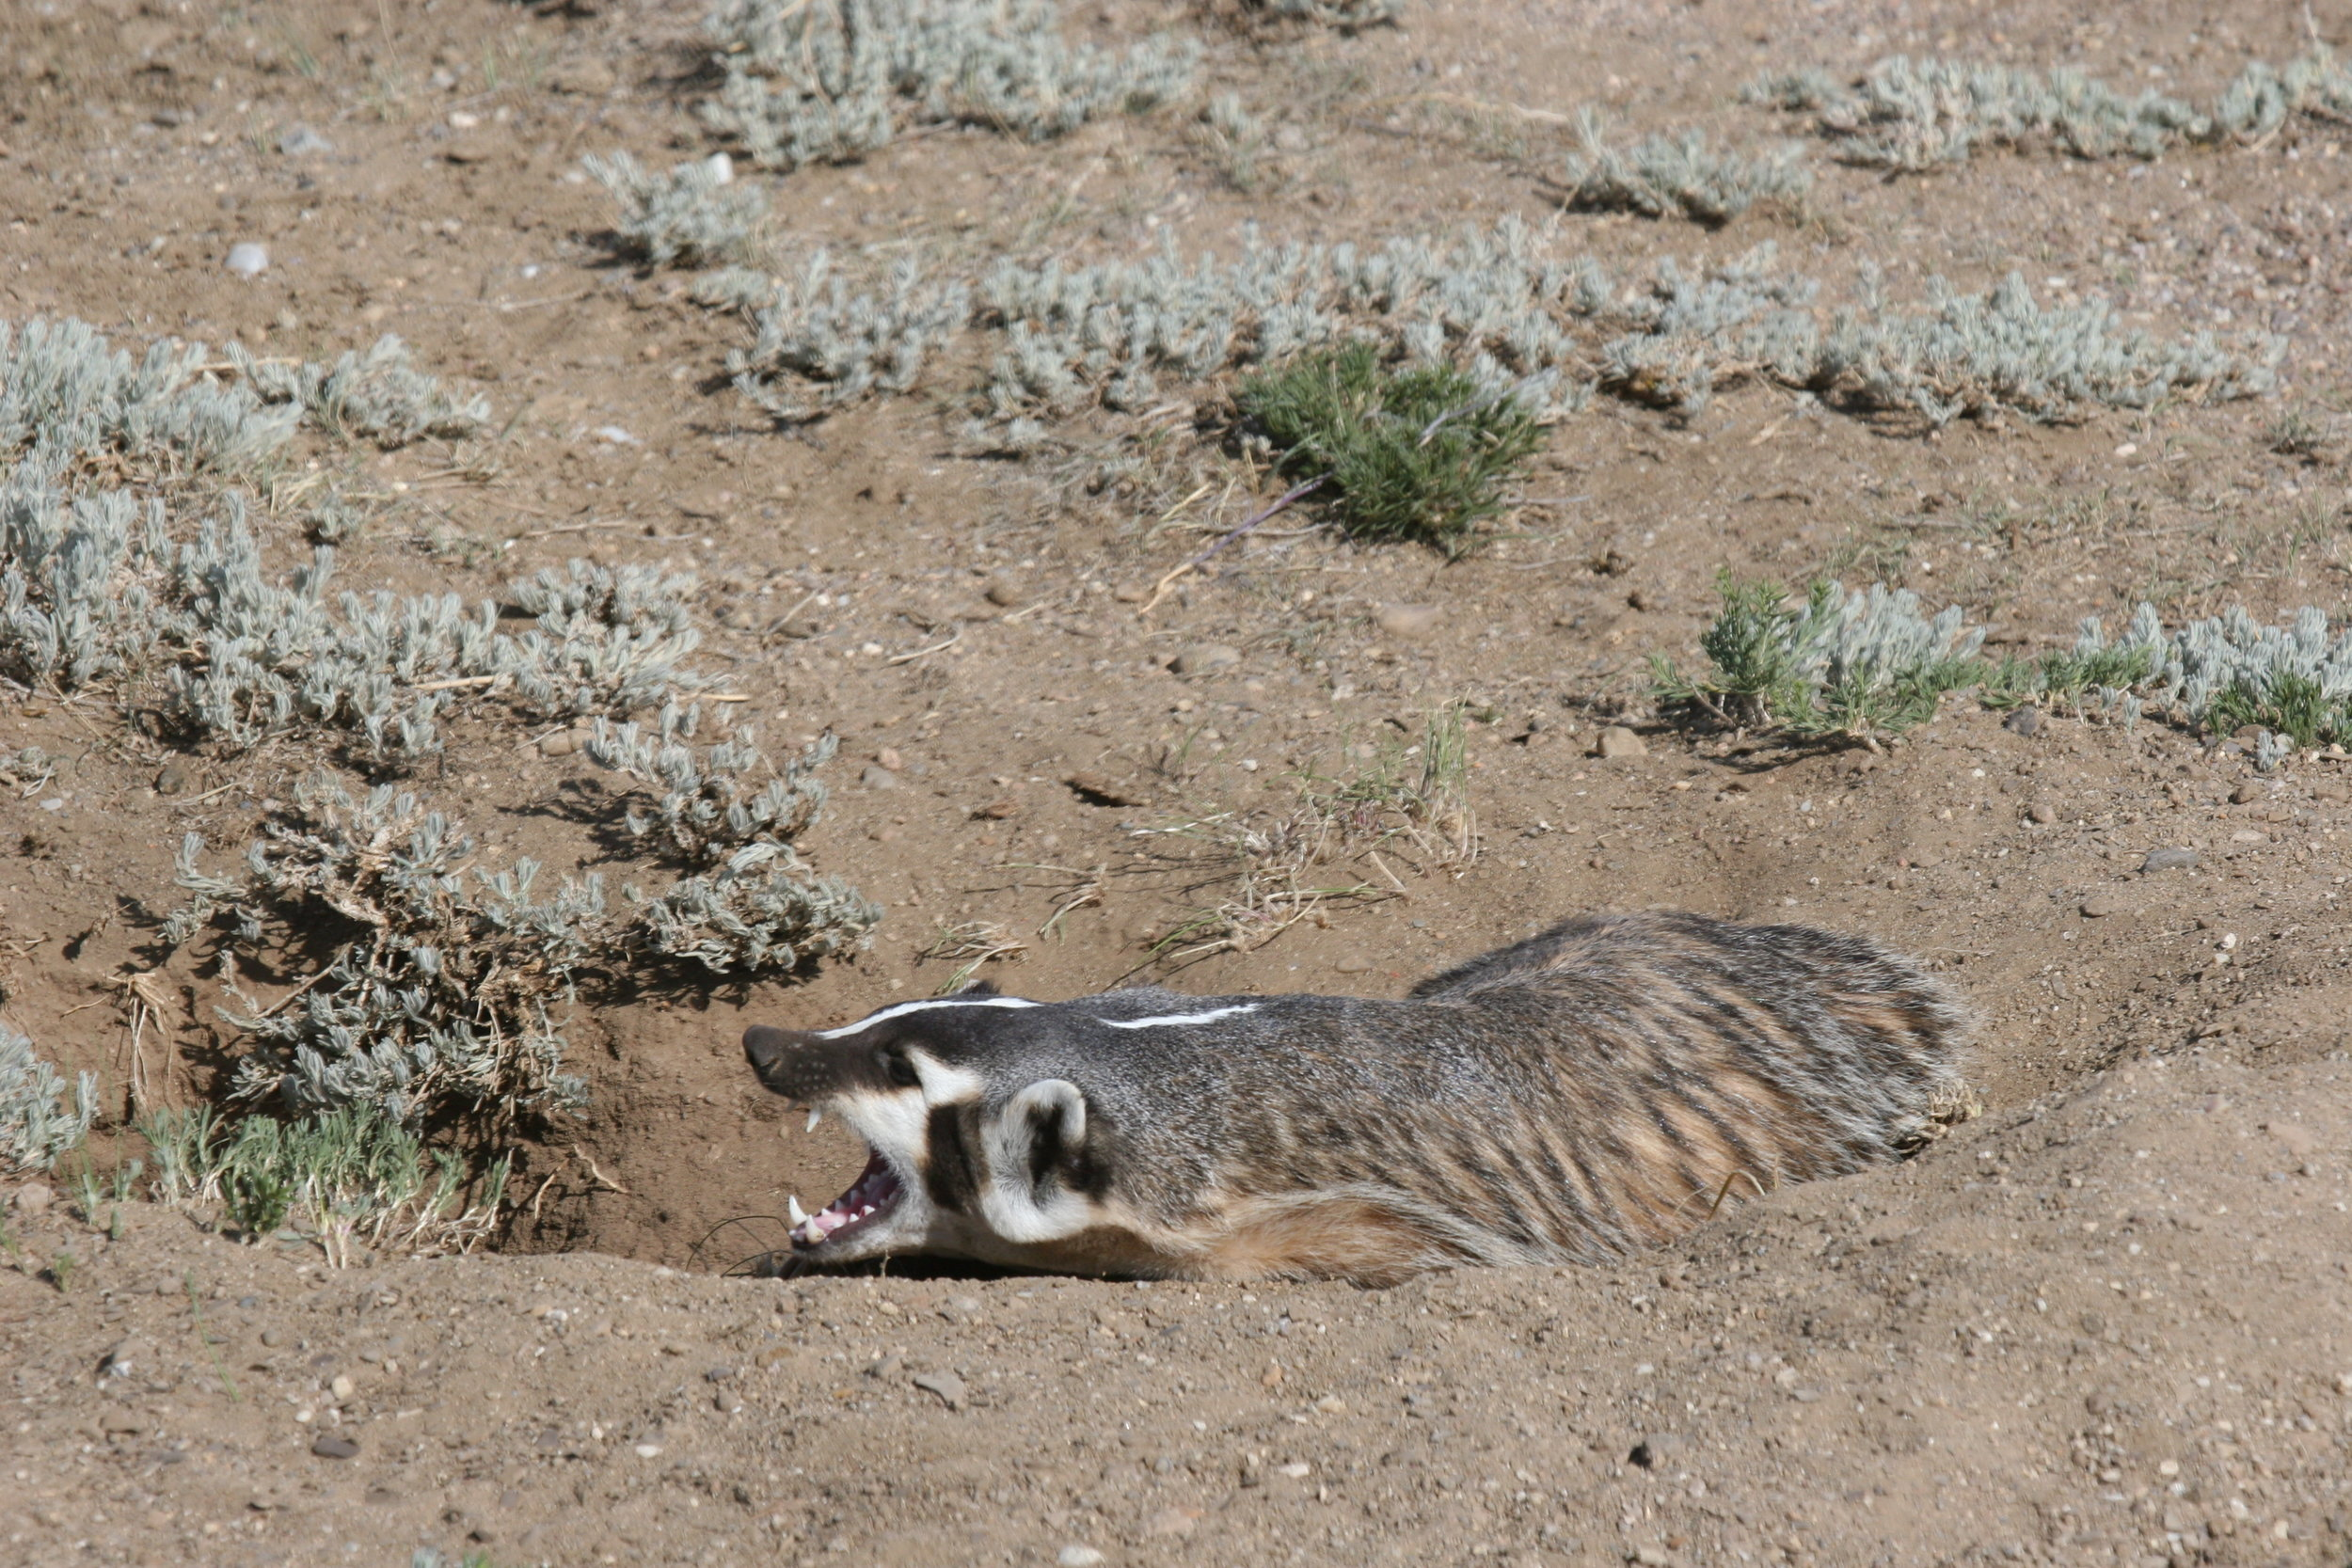 As a carnivore, badgers have long, sharp canines for grabbing prey.  ©John Hoogland 2012